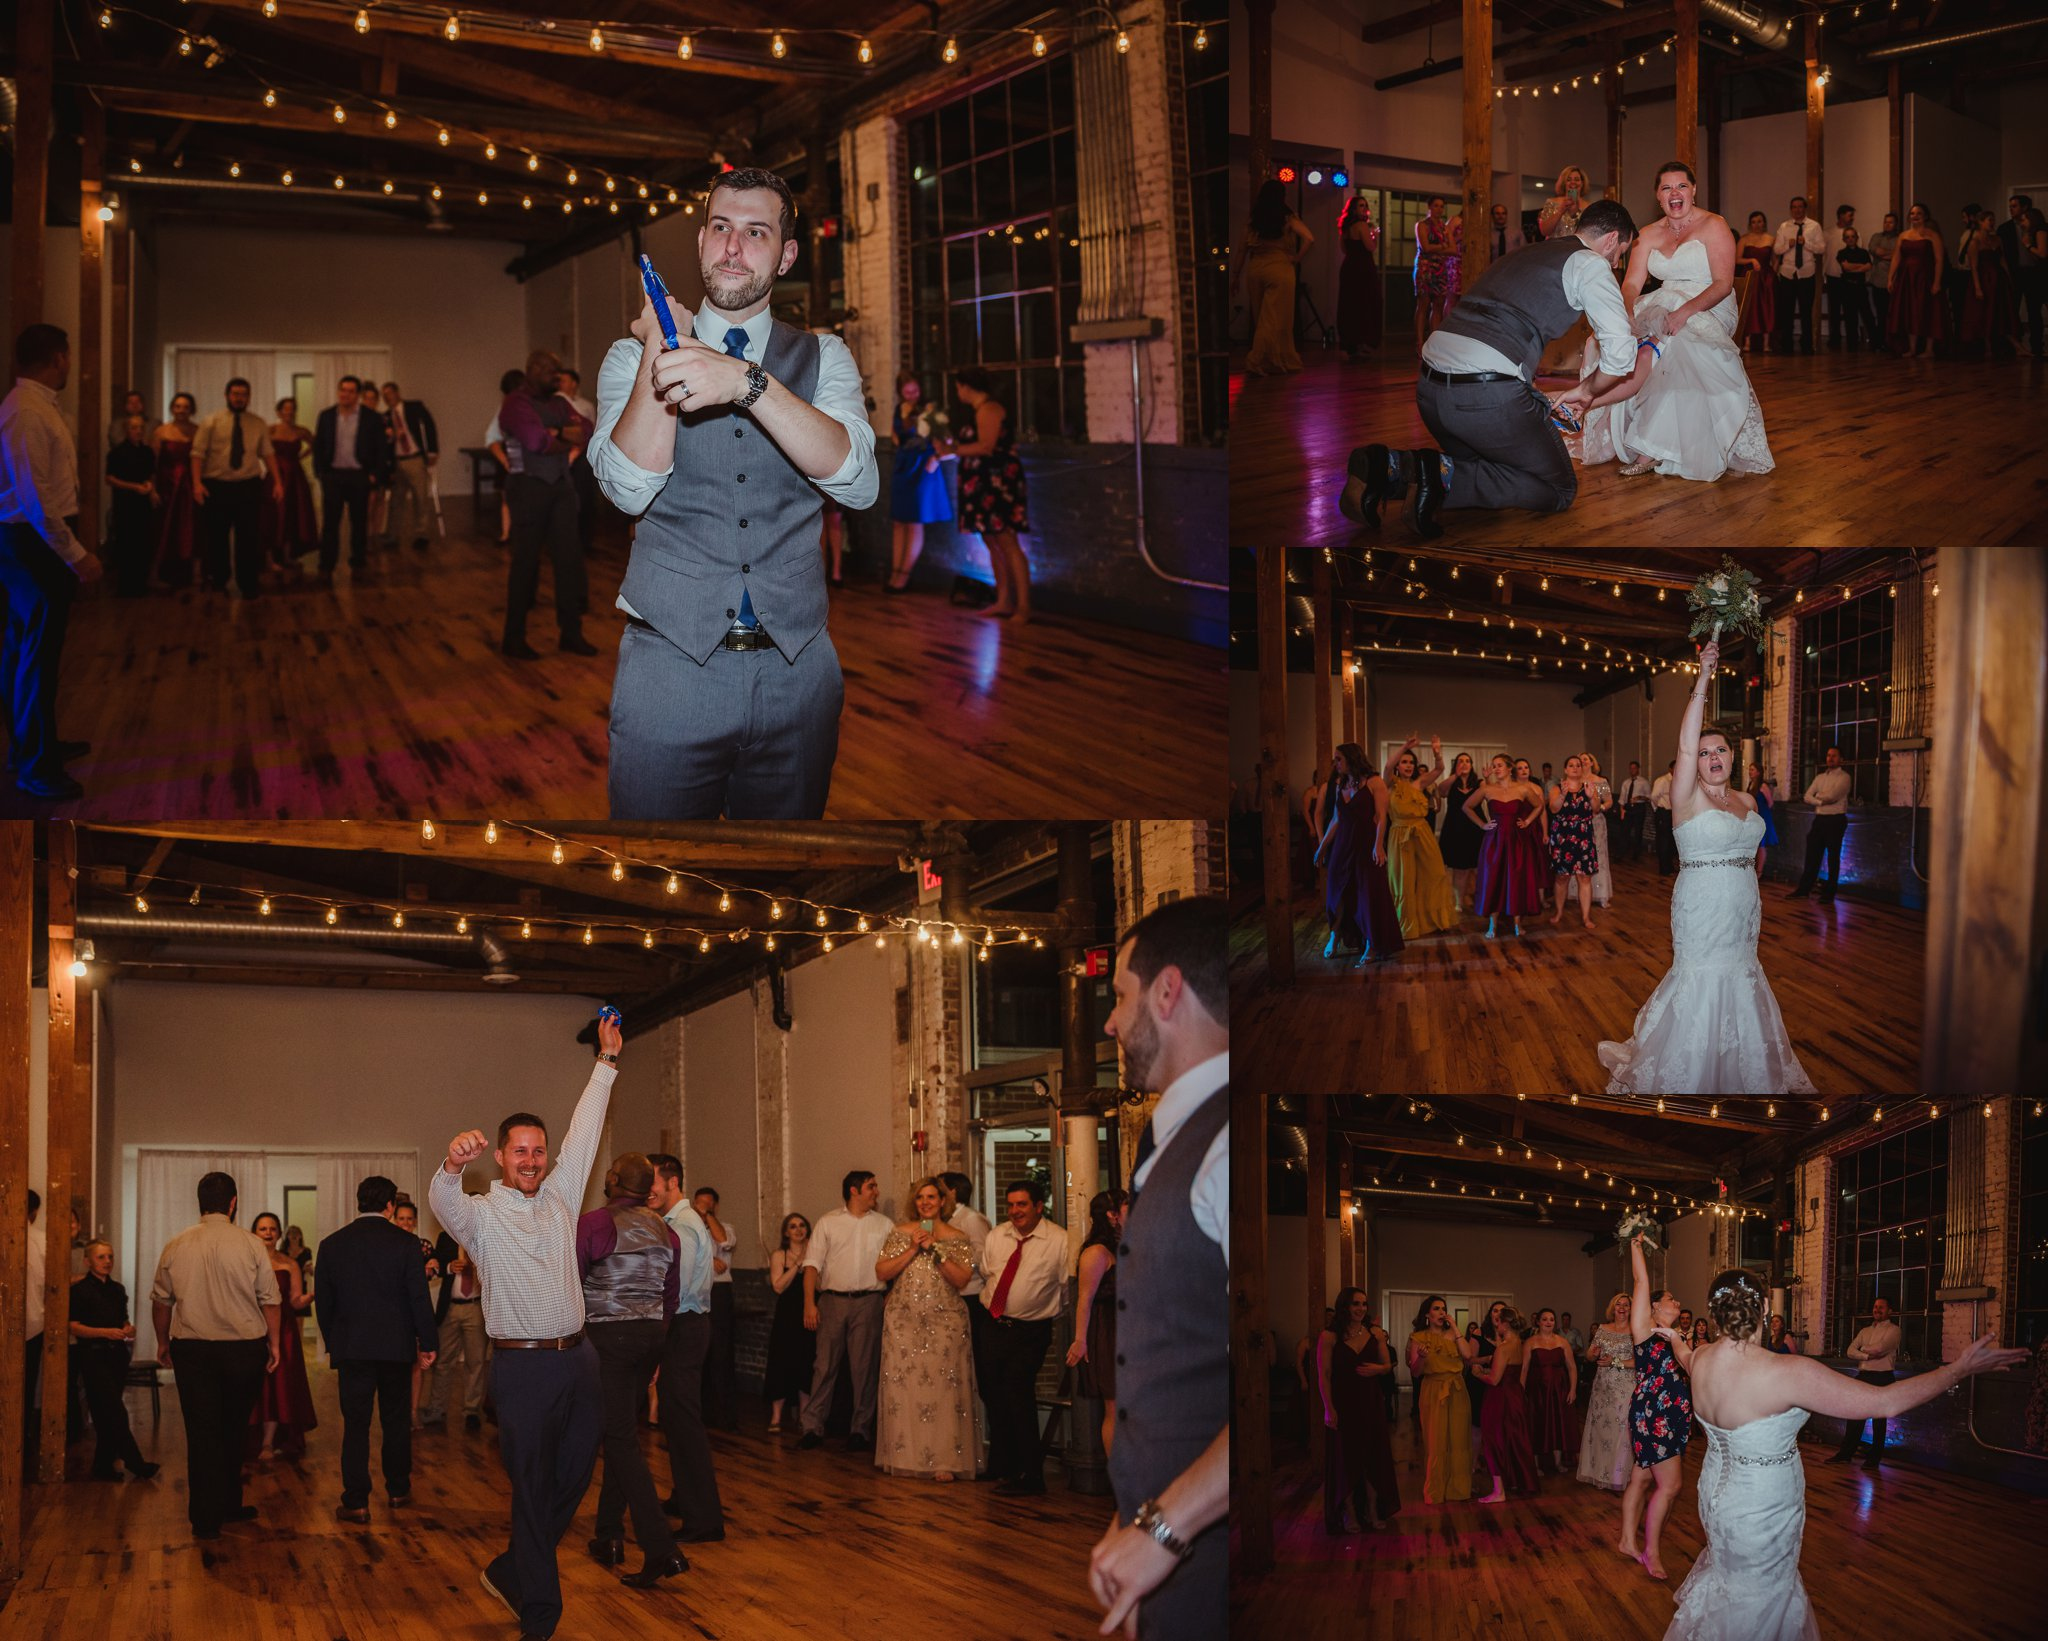 The bride and groom threw the bouquet and the garter at their wedding reception in Raleigh, North Carolina, pictures by Rose Trail Images.